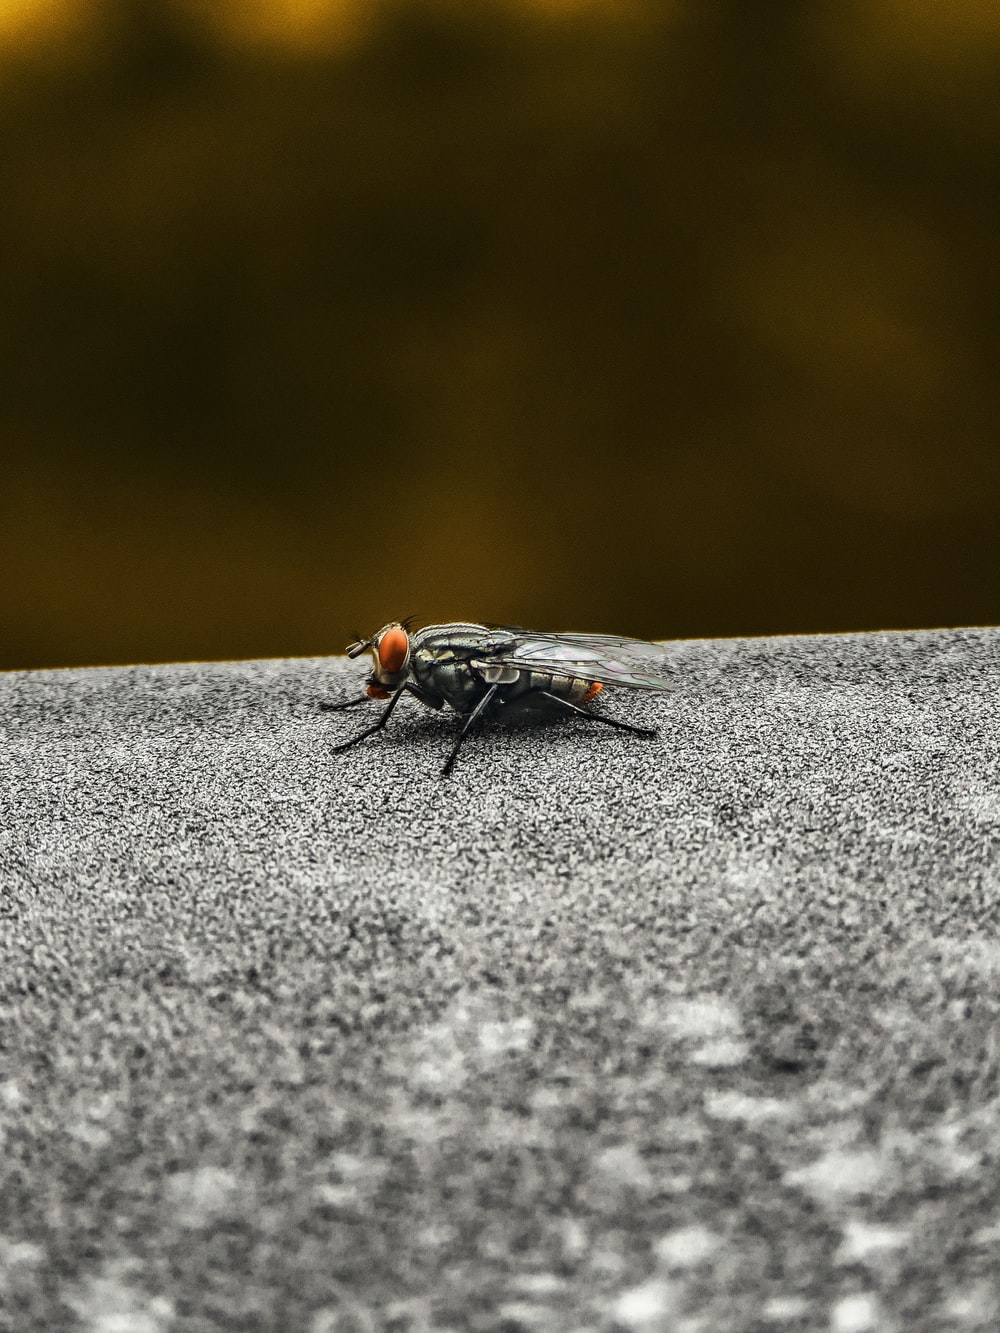 black fly on grey concrete surface in close up photography during daytime